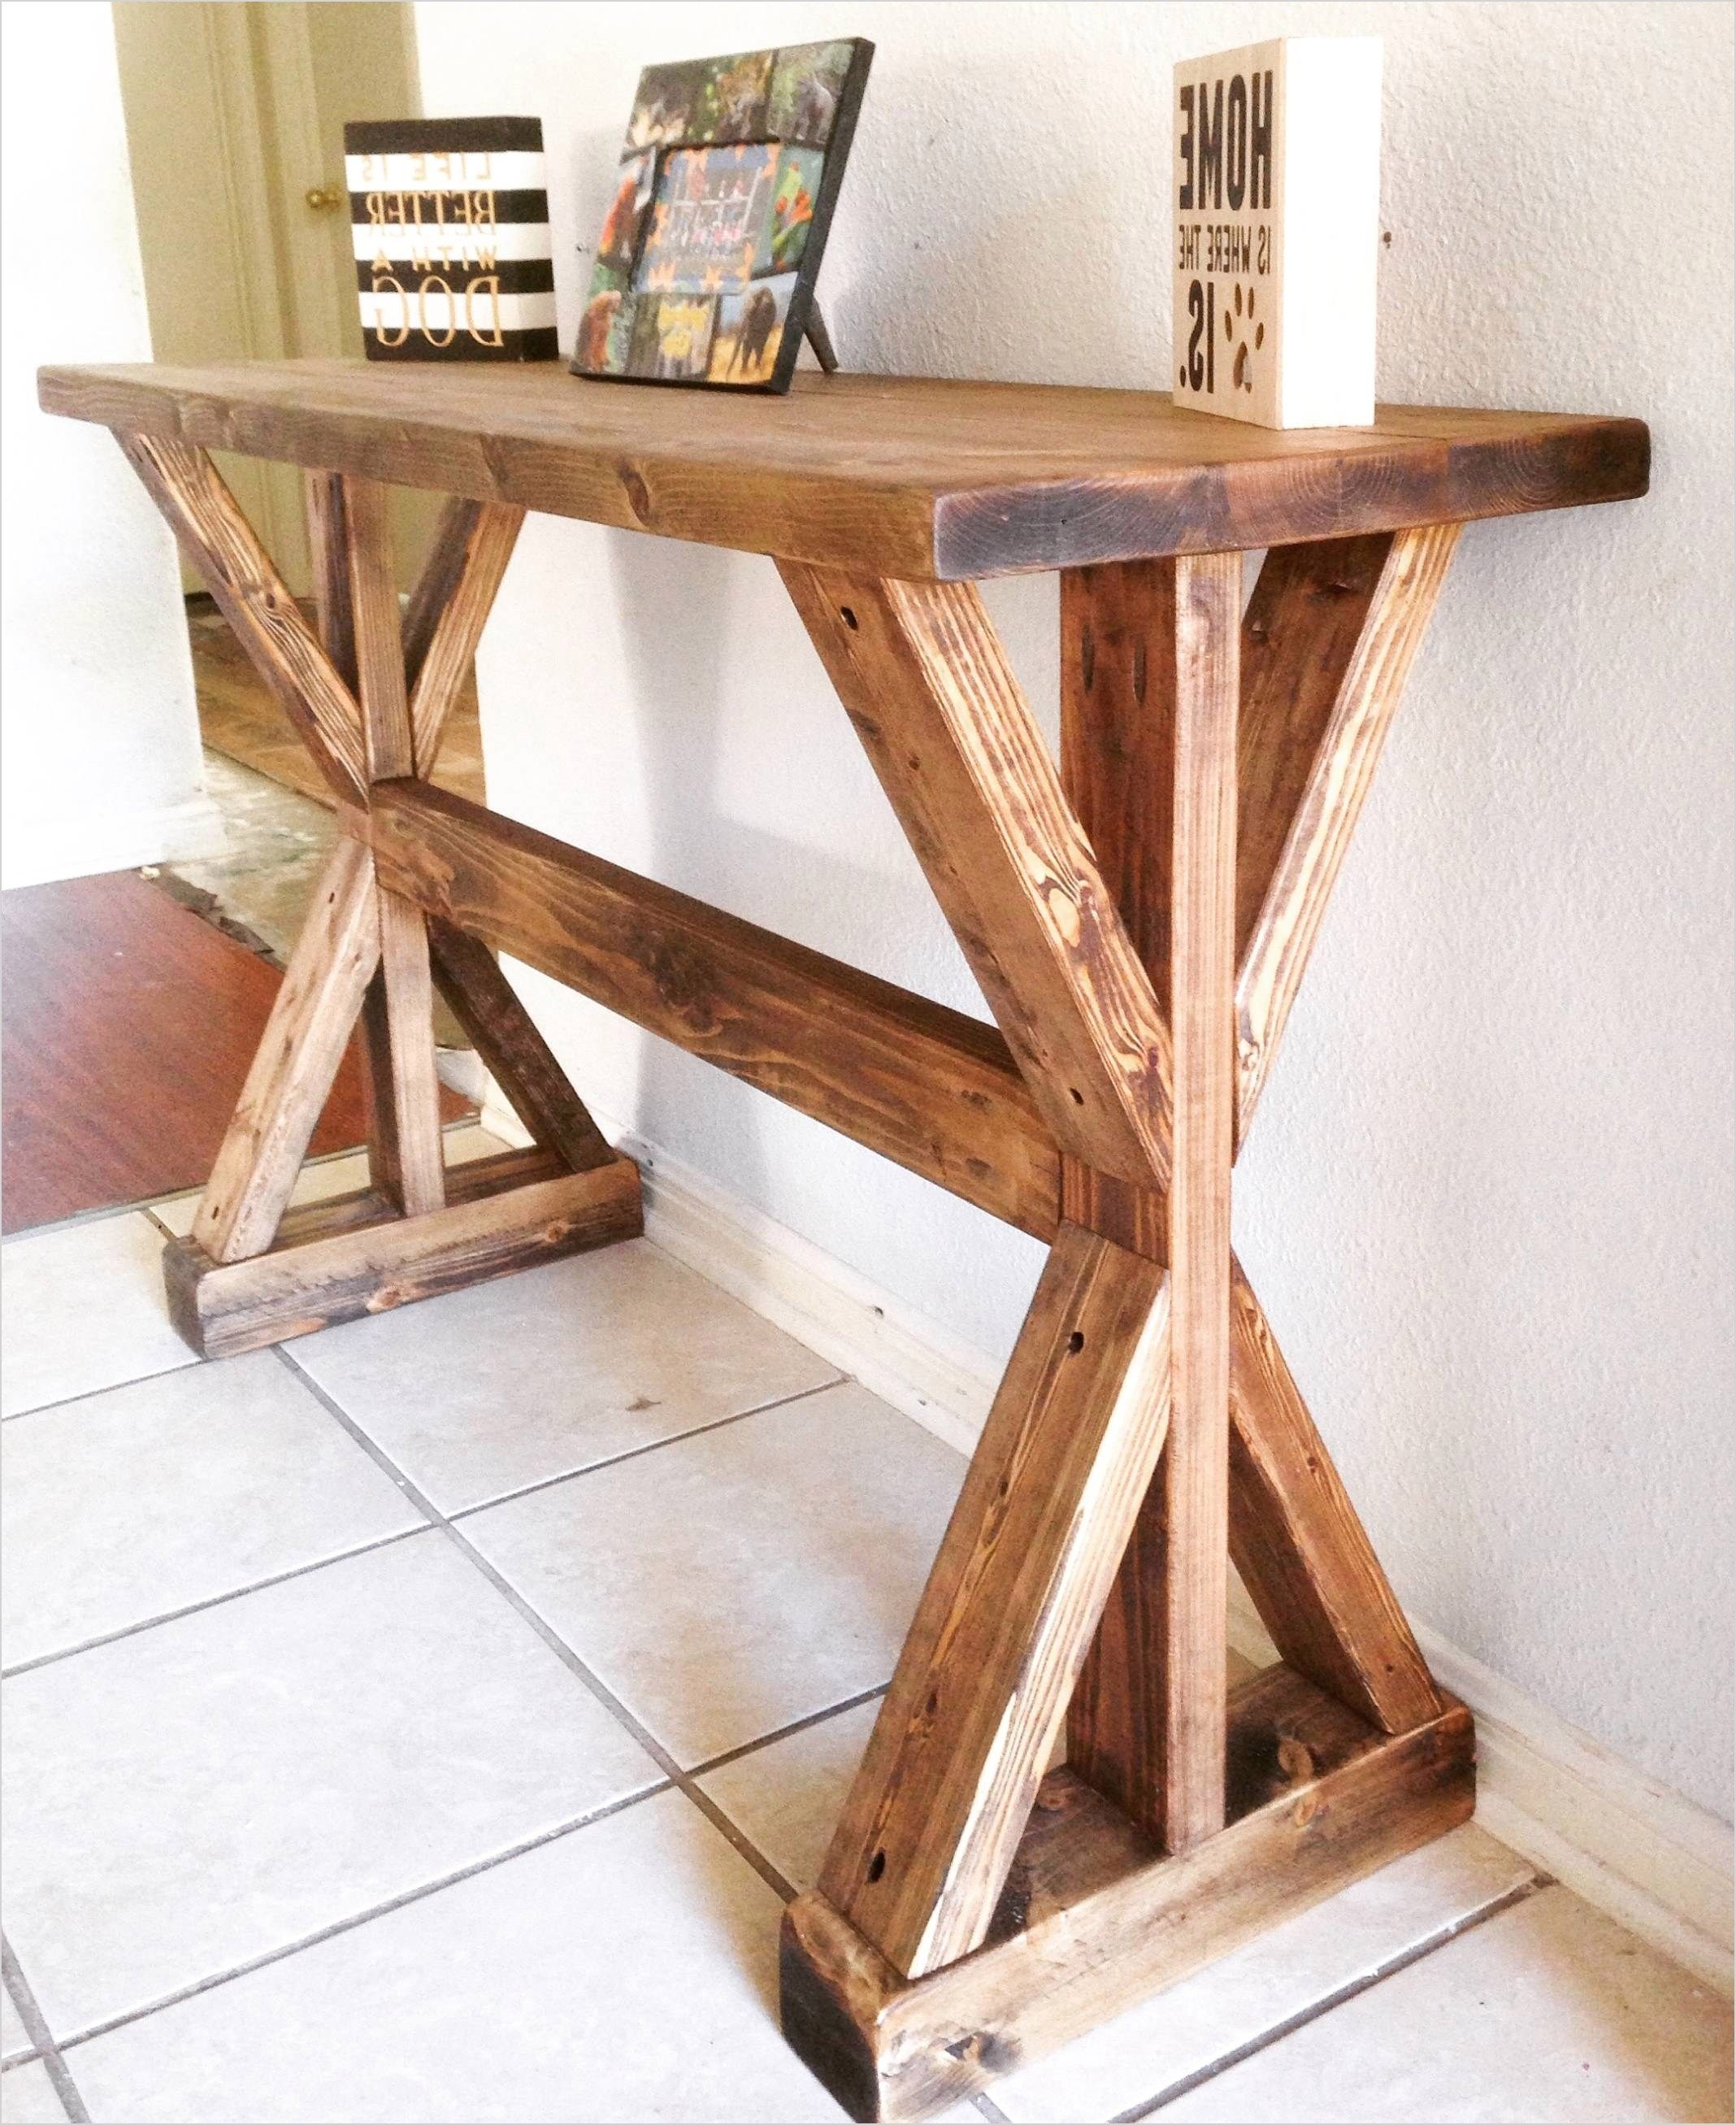 stunning rustic entryway furniture ideas that will make your home